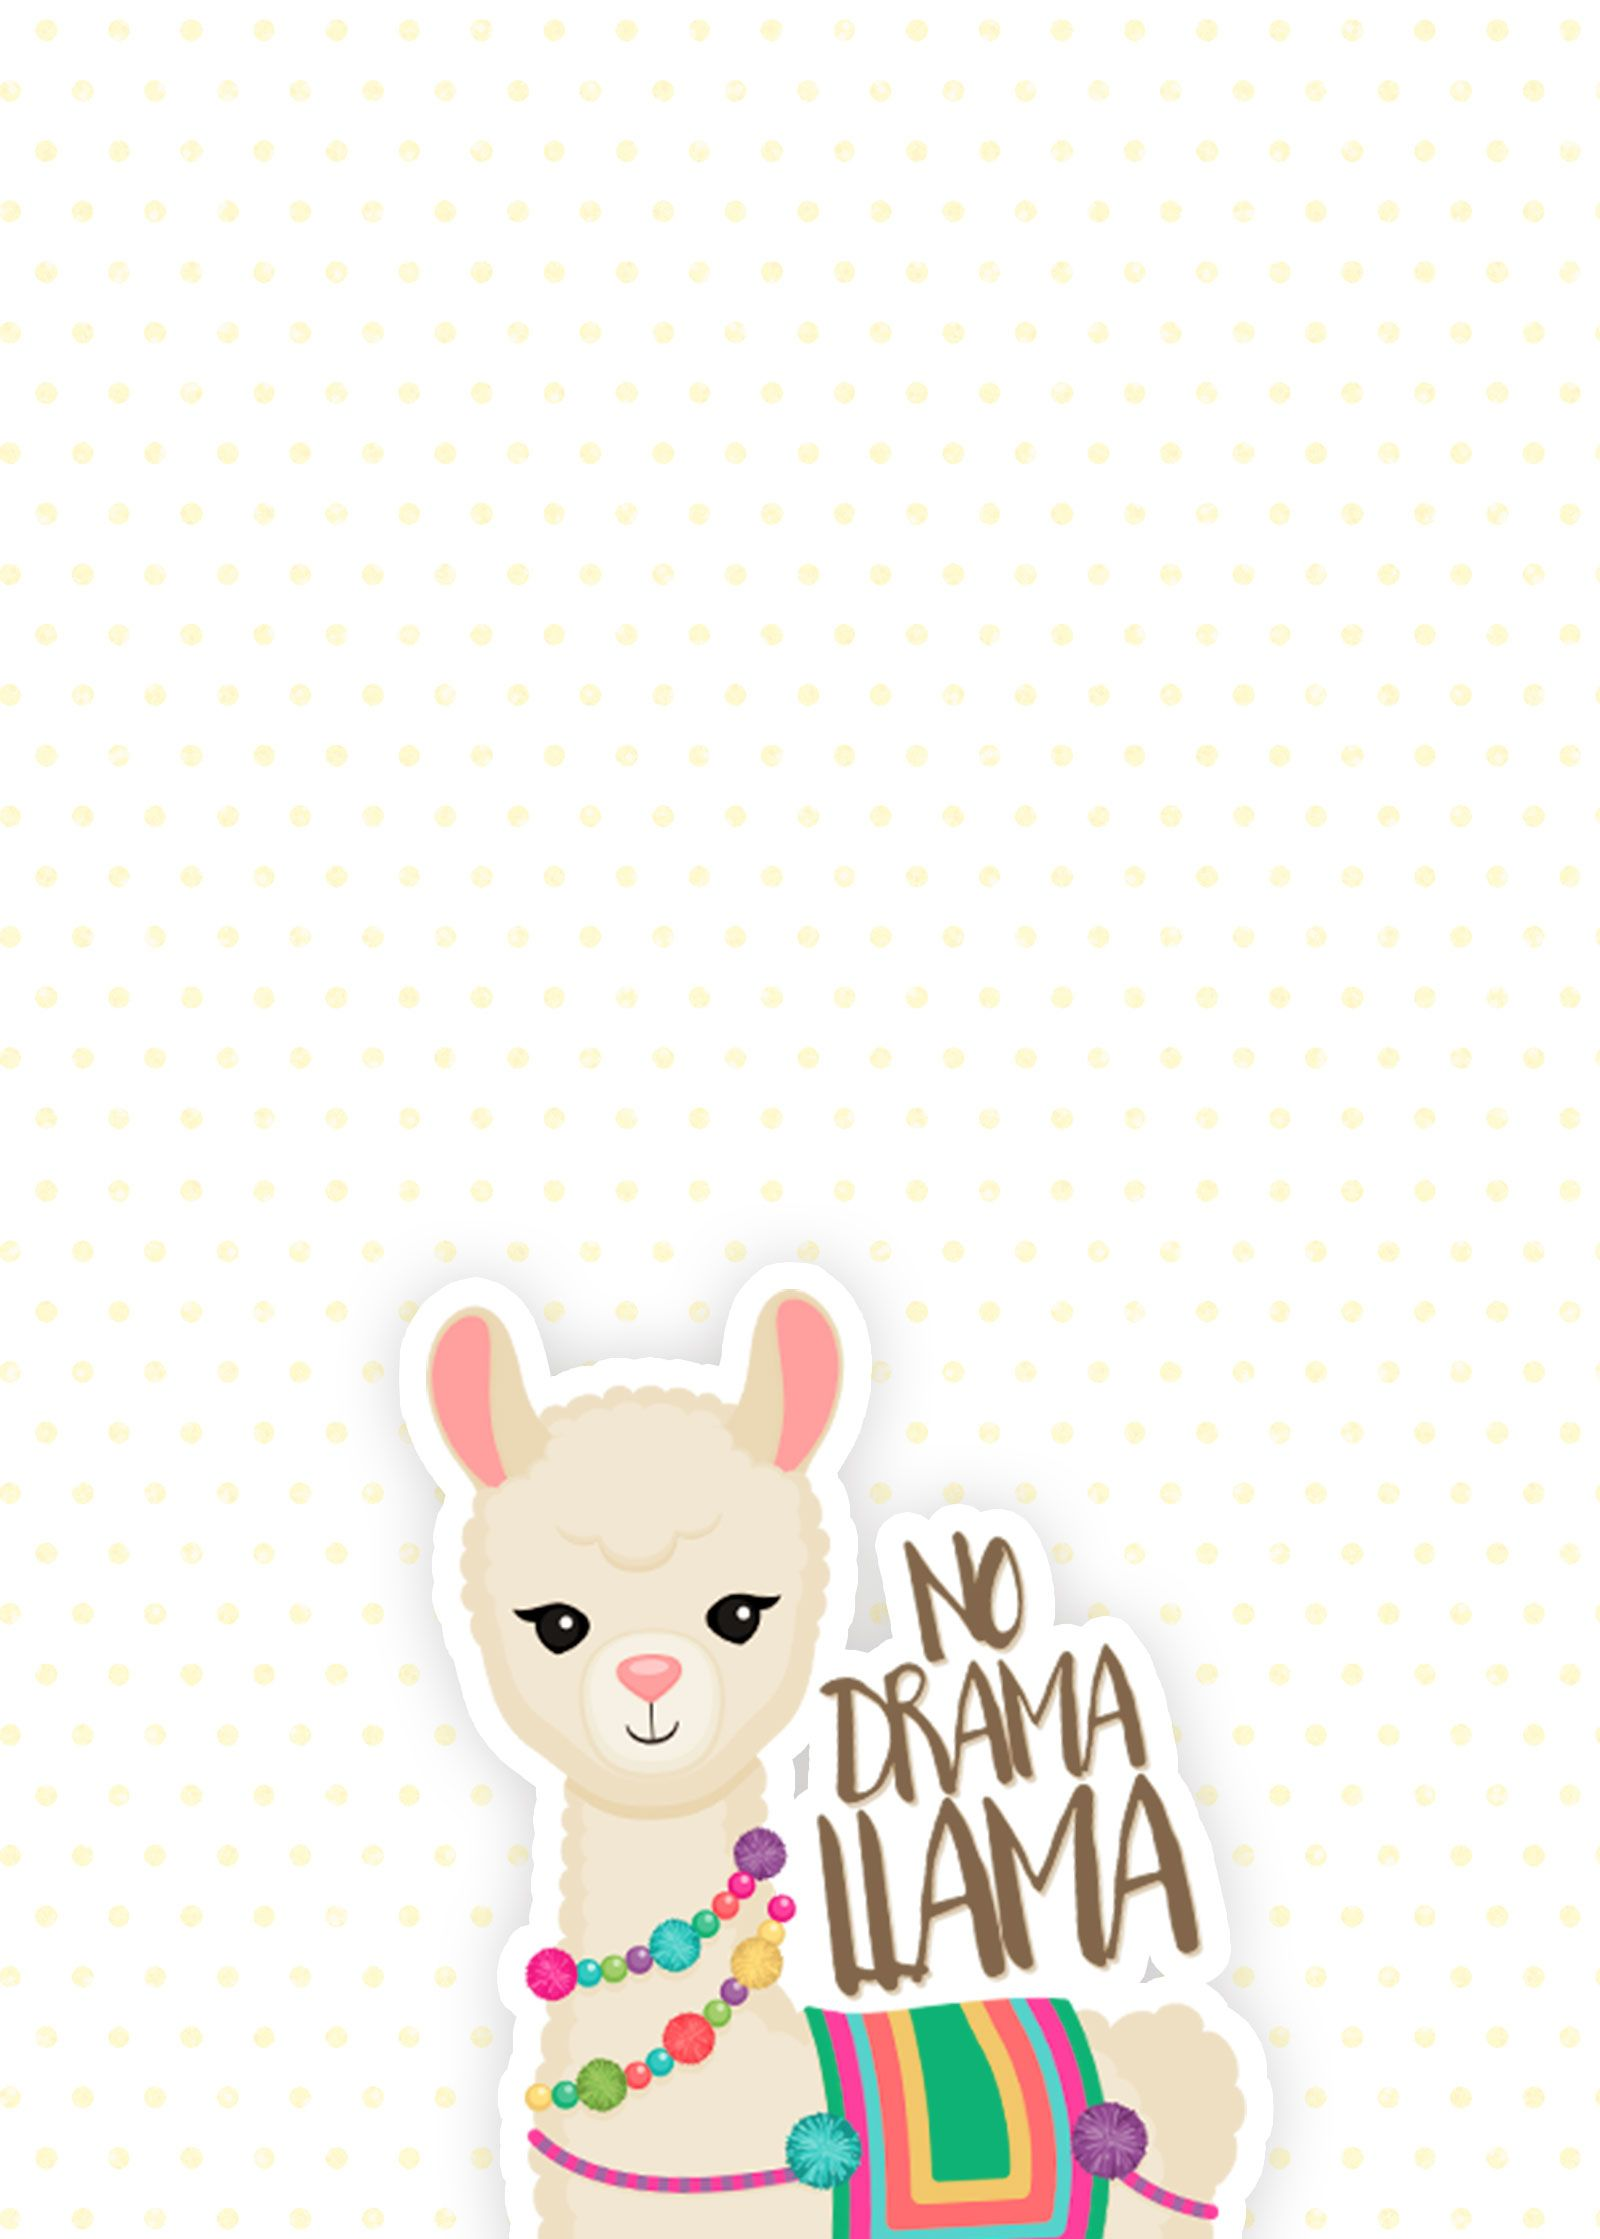 For the Love of Llamas! 10 Cutesy Llama iPhone Wallpapers